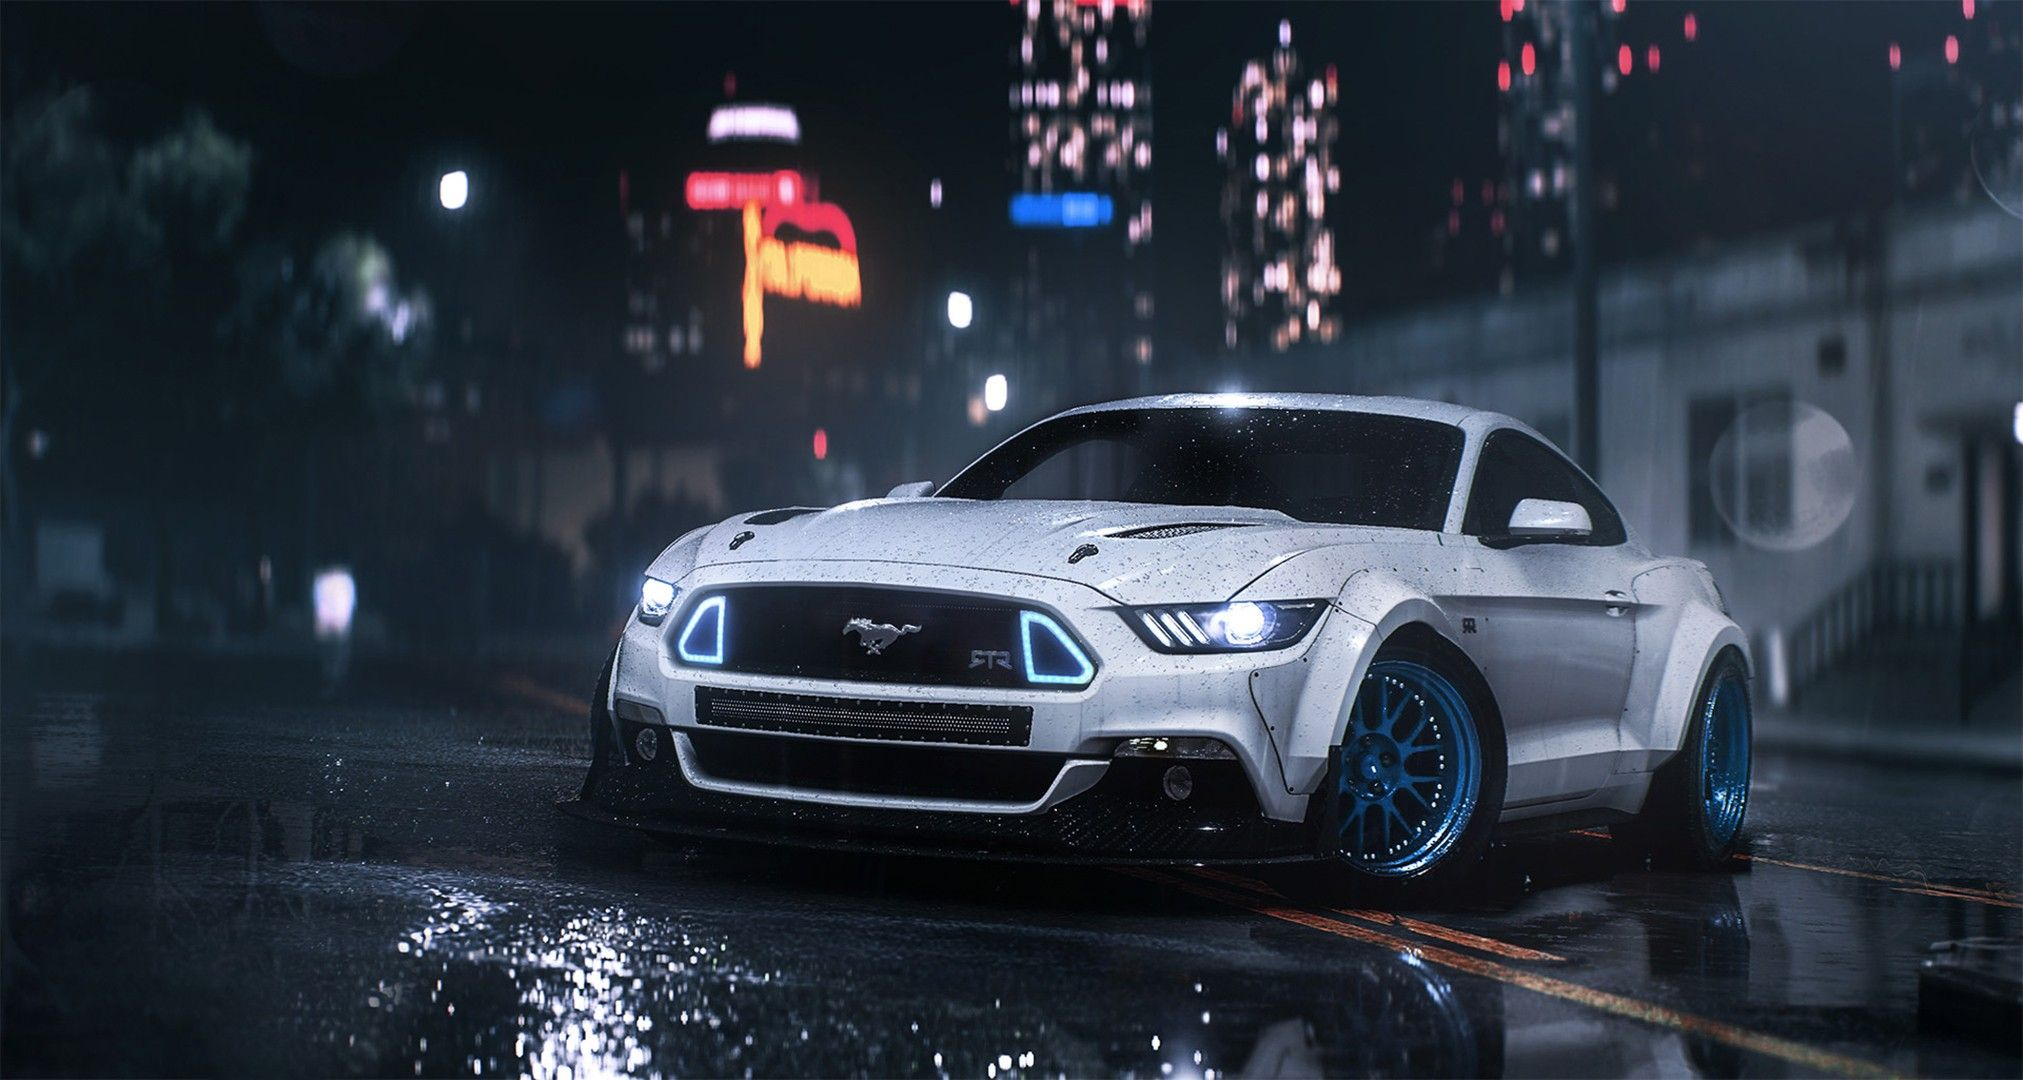 Wallpaper Need For Speed Mustang Cars Hd Smartphone Cool